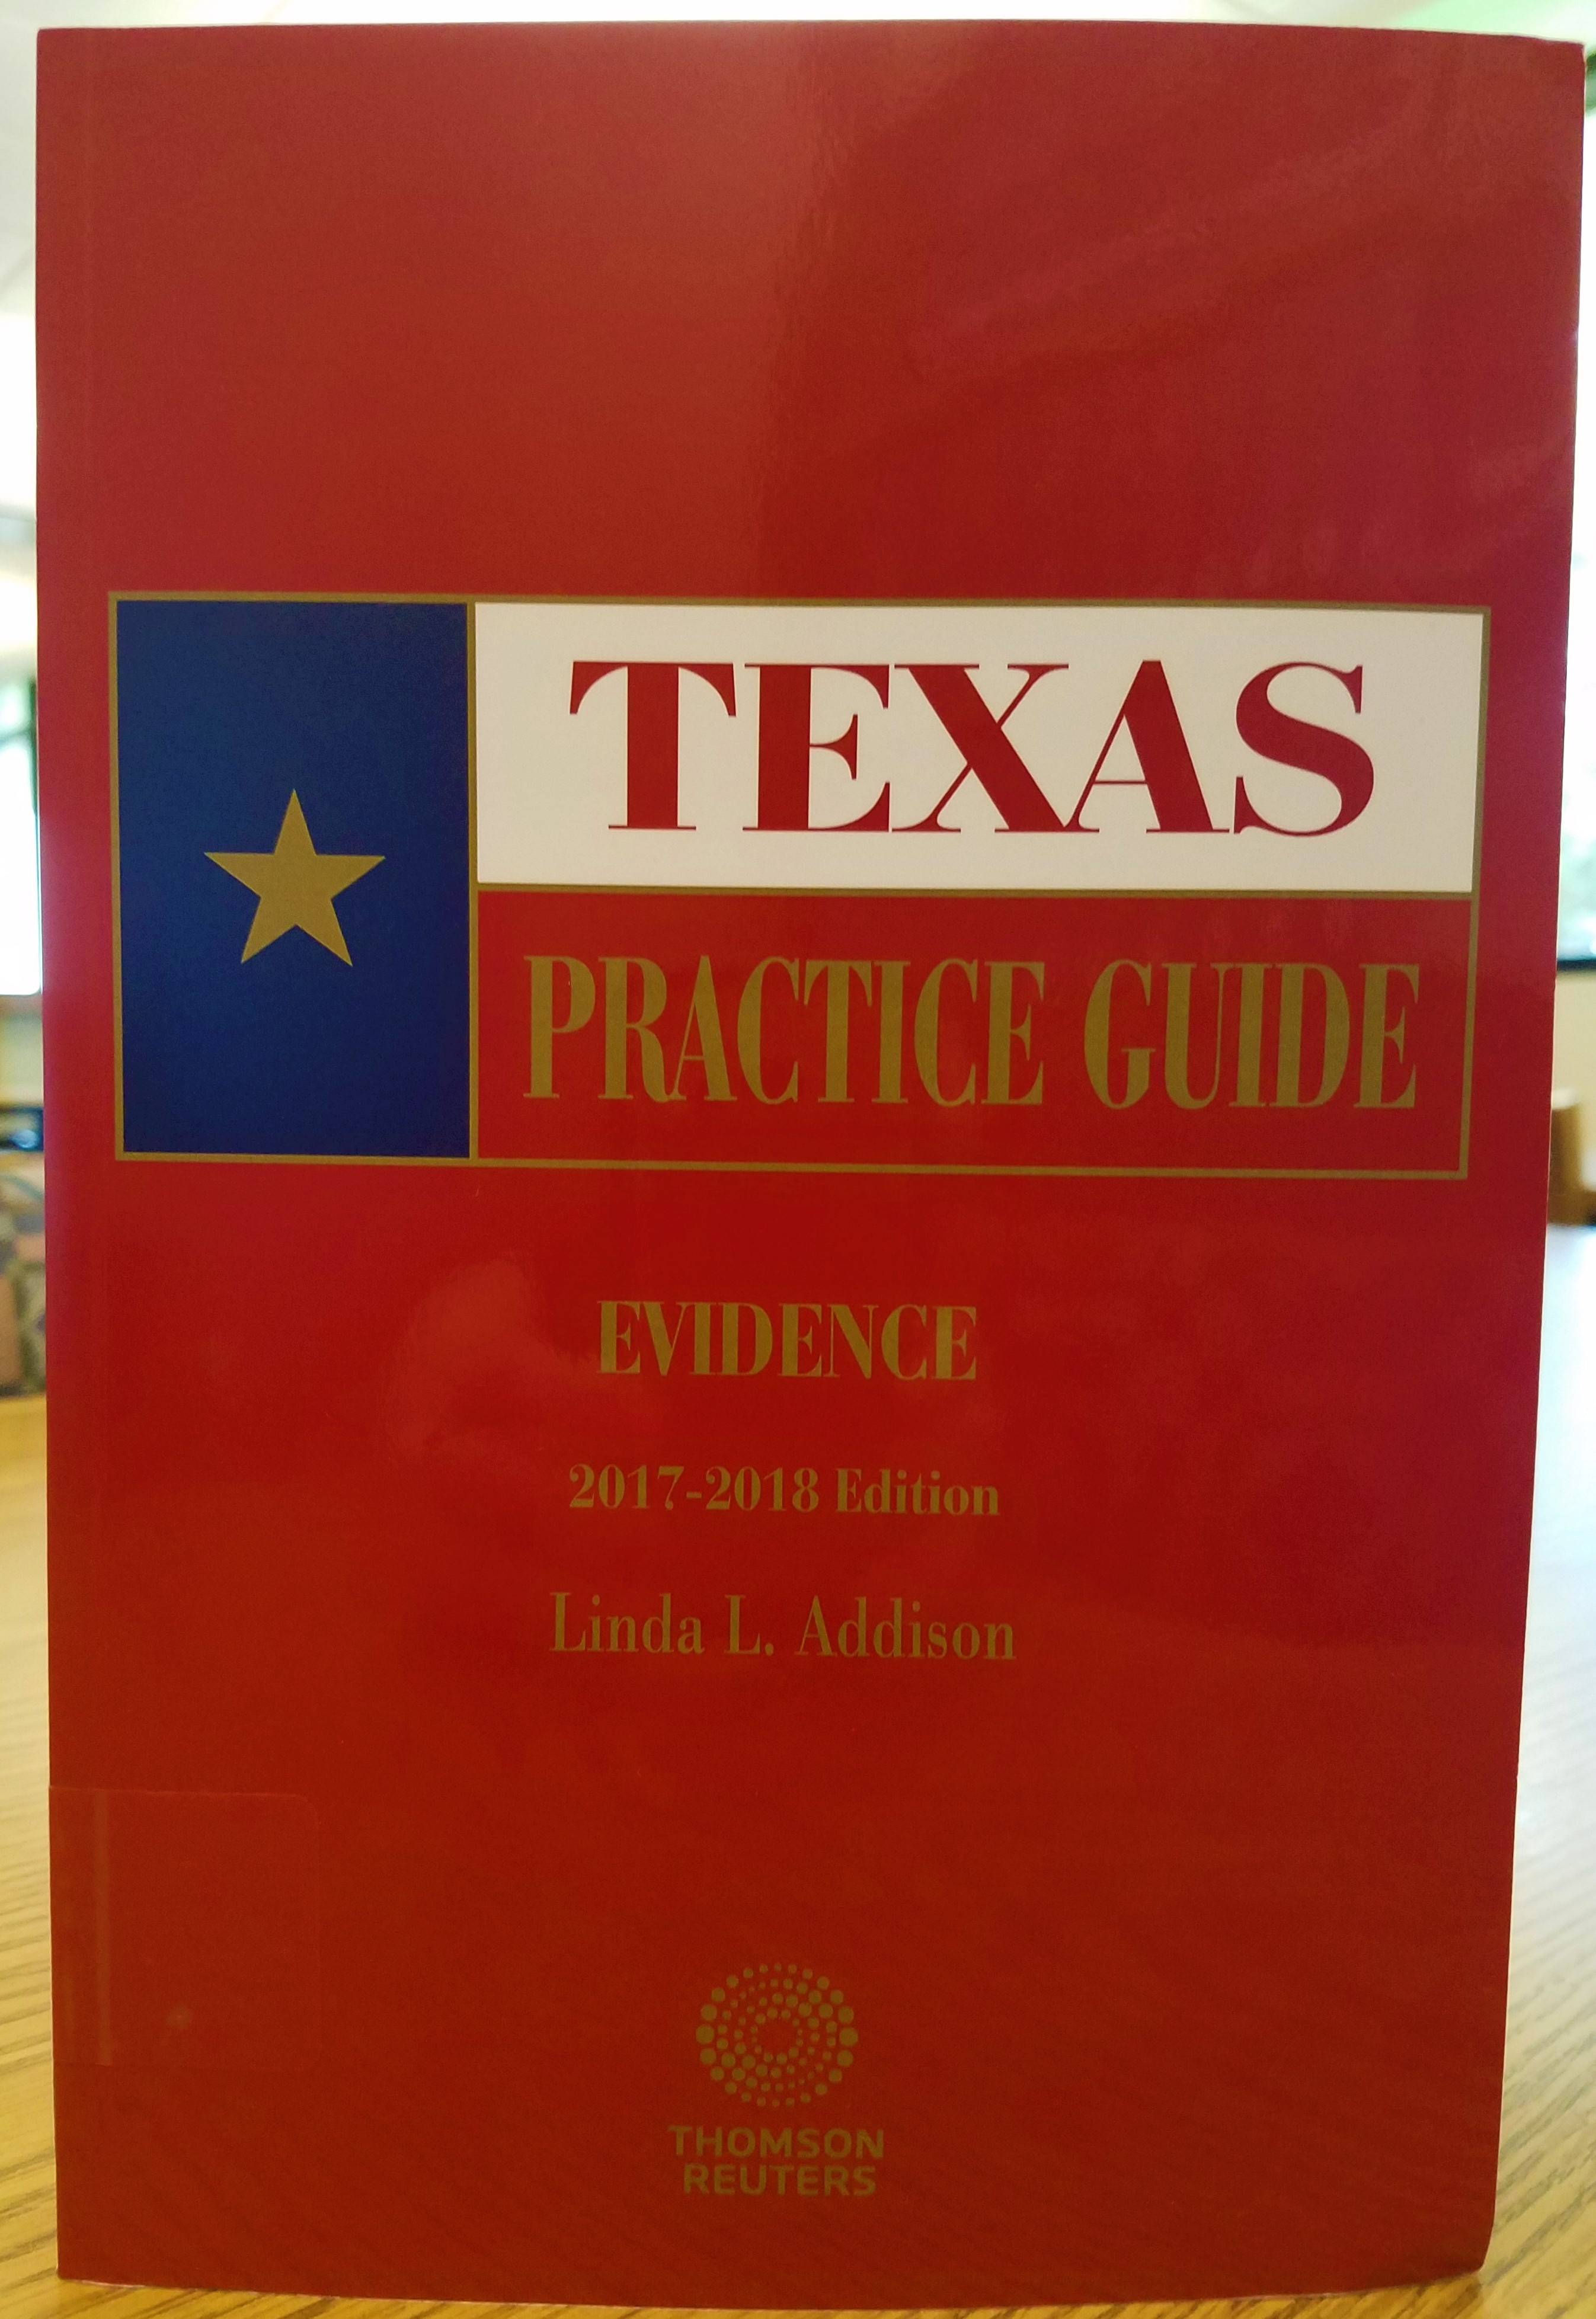 Texas Practice Guide: Evidence